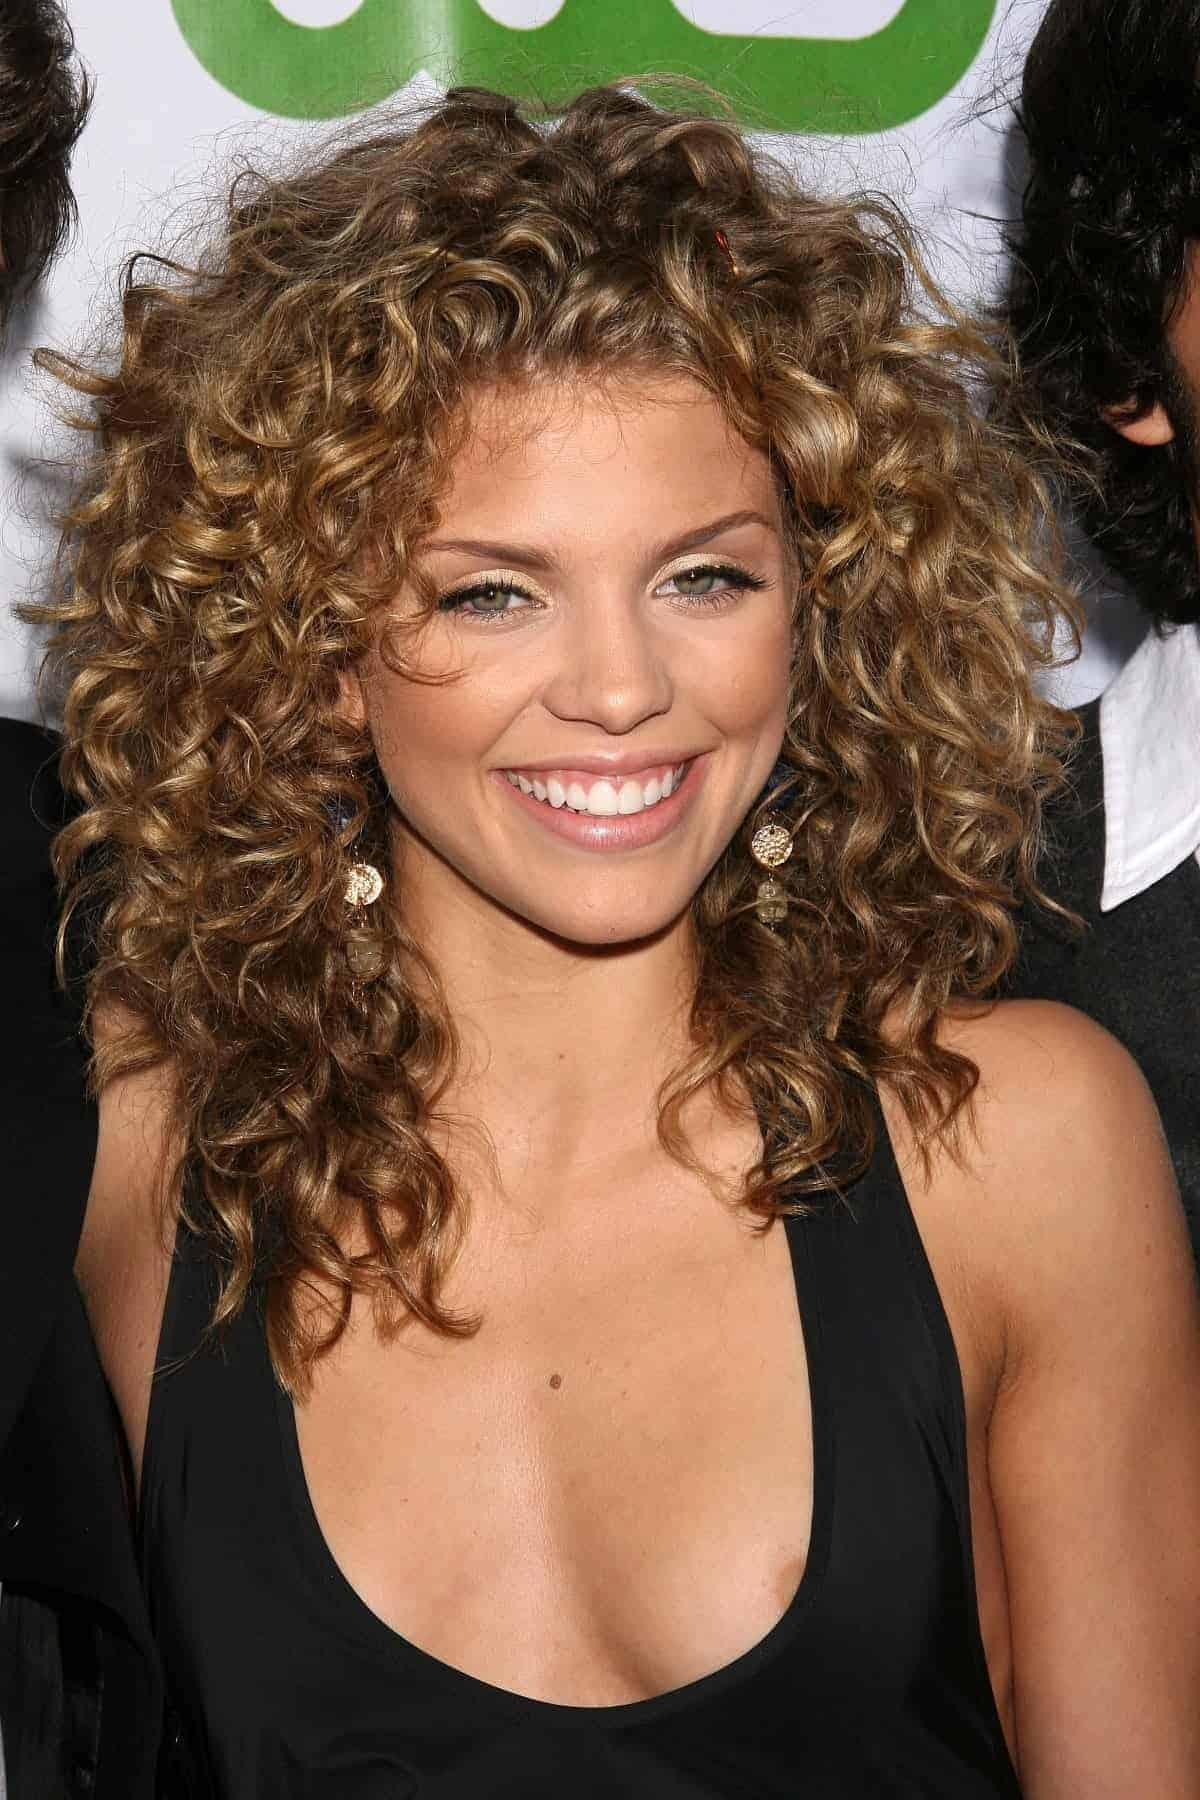 Short wavy hairstyles for round faces 2015, Women styles, hairstyles, makeup tutorials, fashion ...